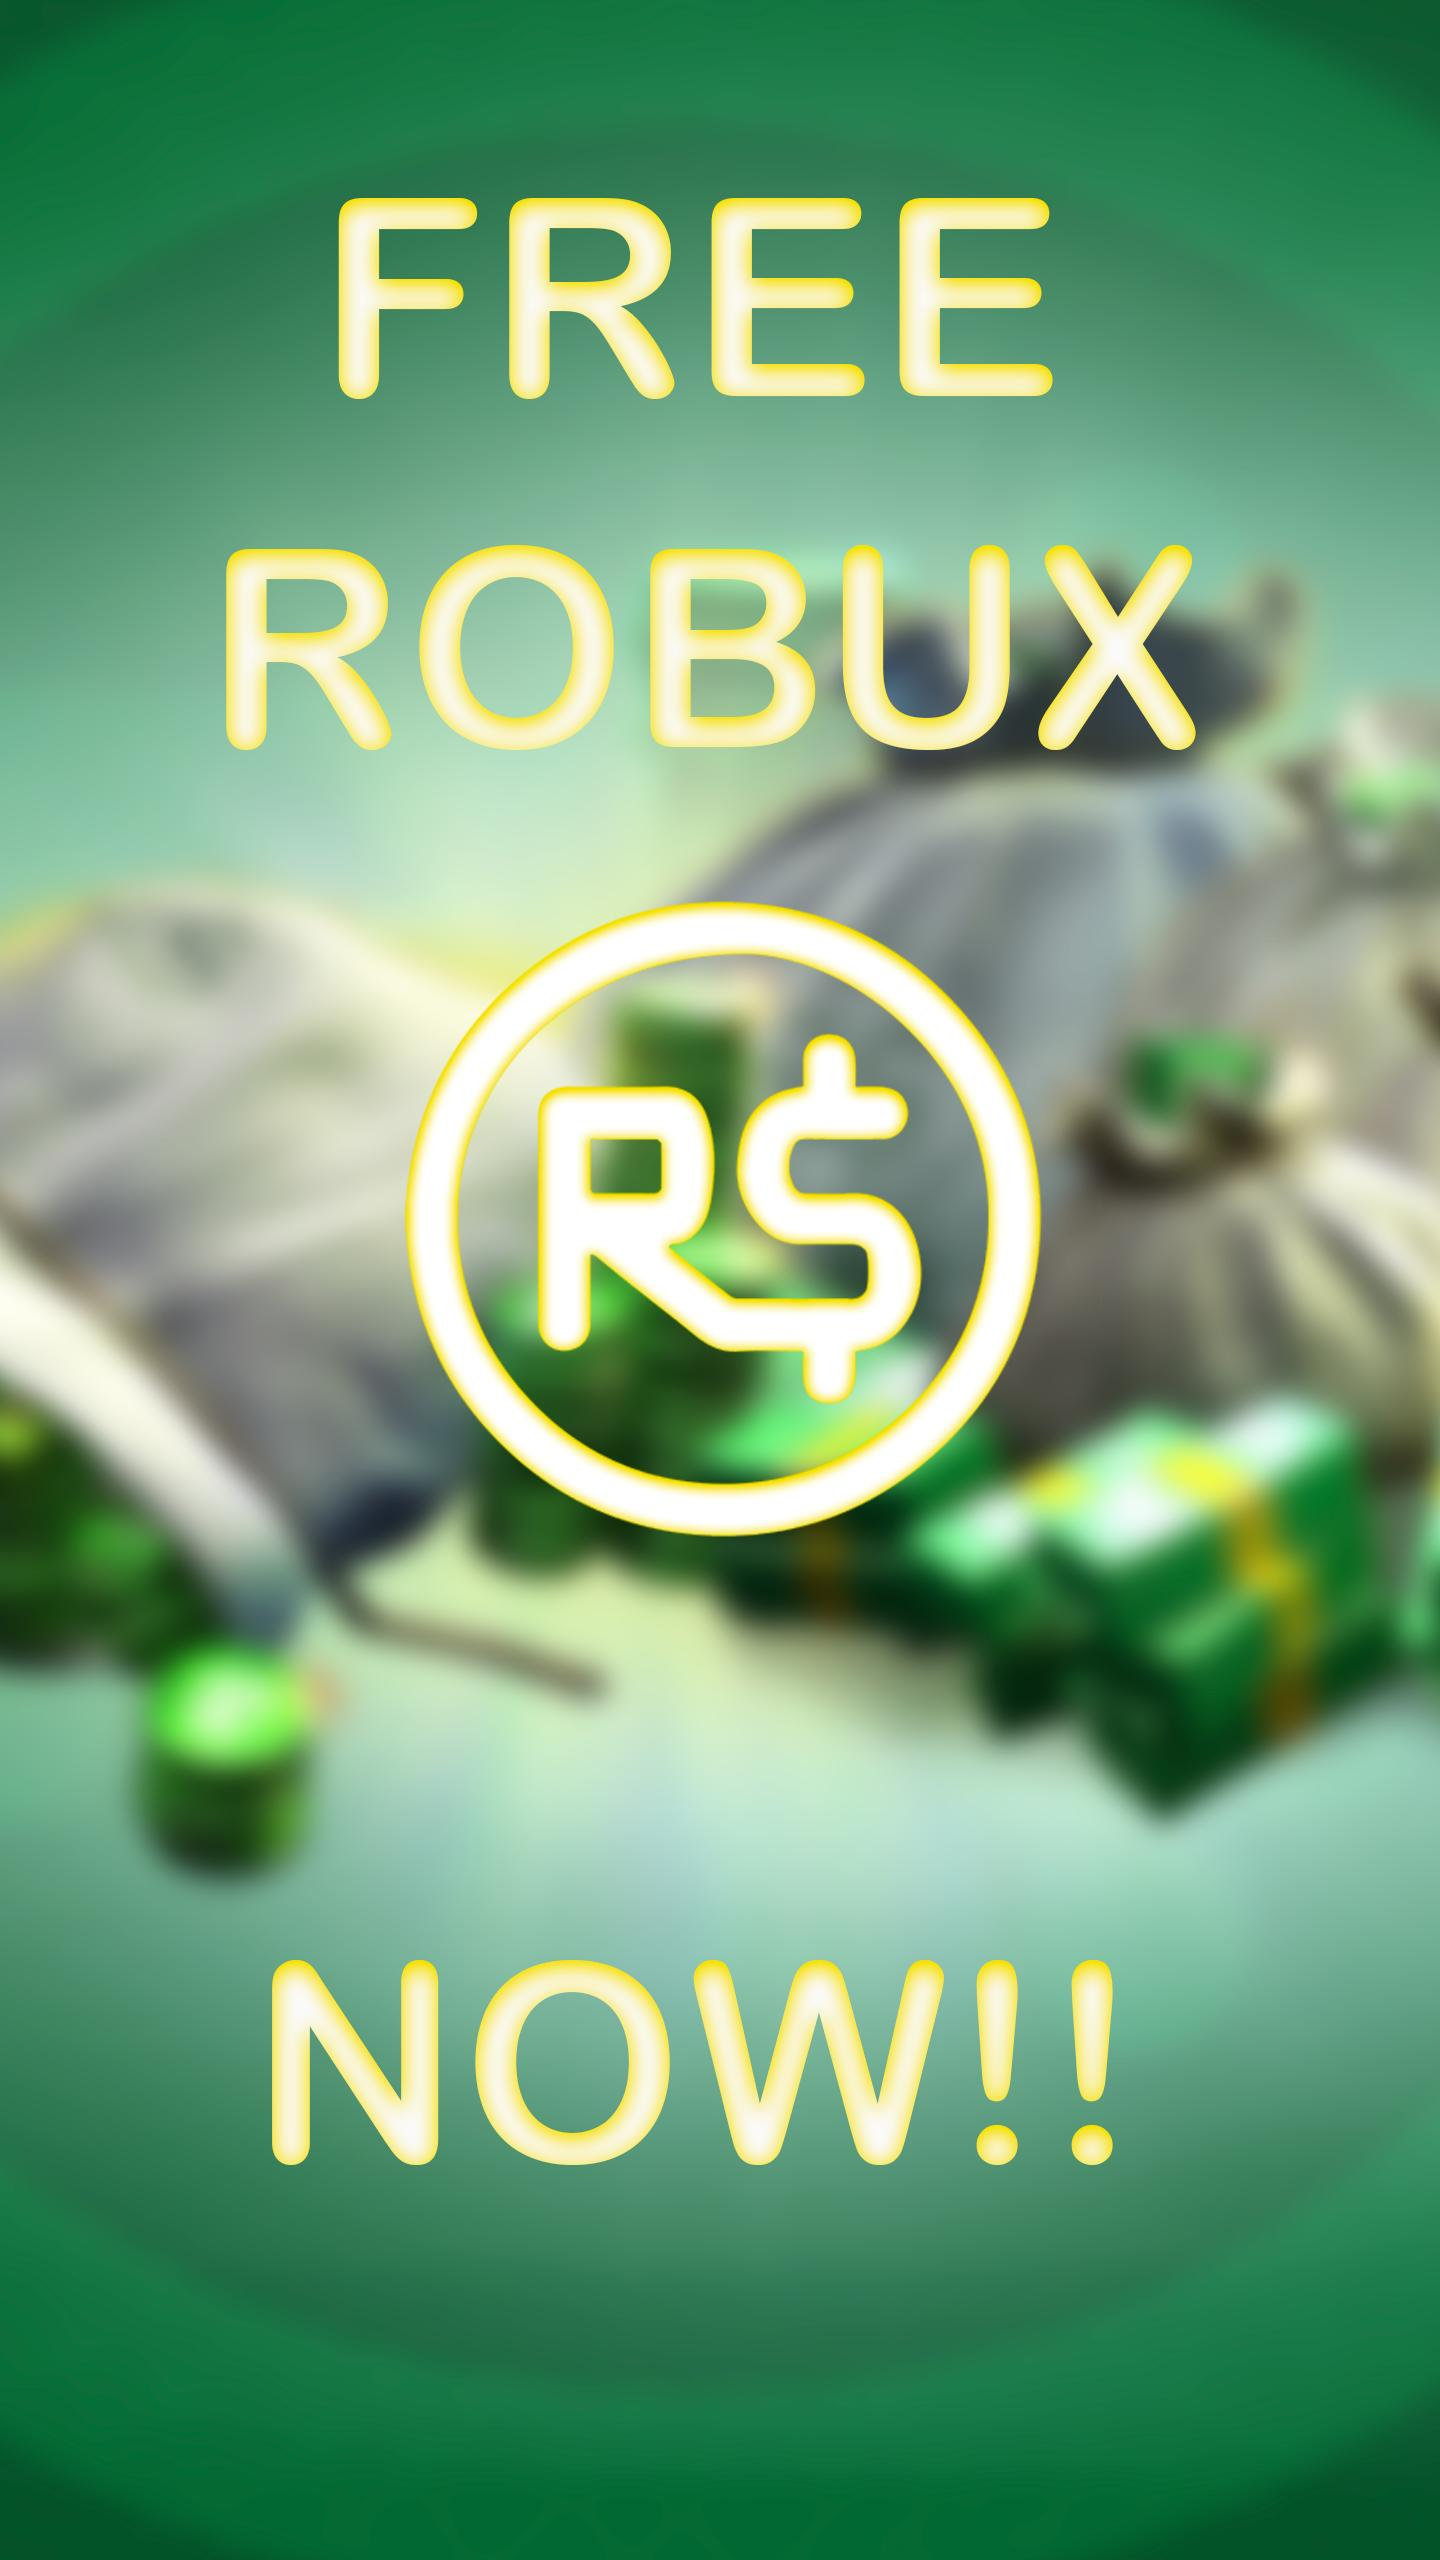 como conseguir robux gratis 100 real Robux Gratis 2019 Como Ganar Robux Gratis Ahora For Android Apk Download